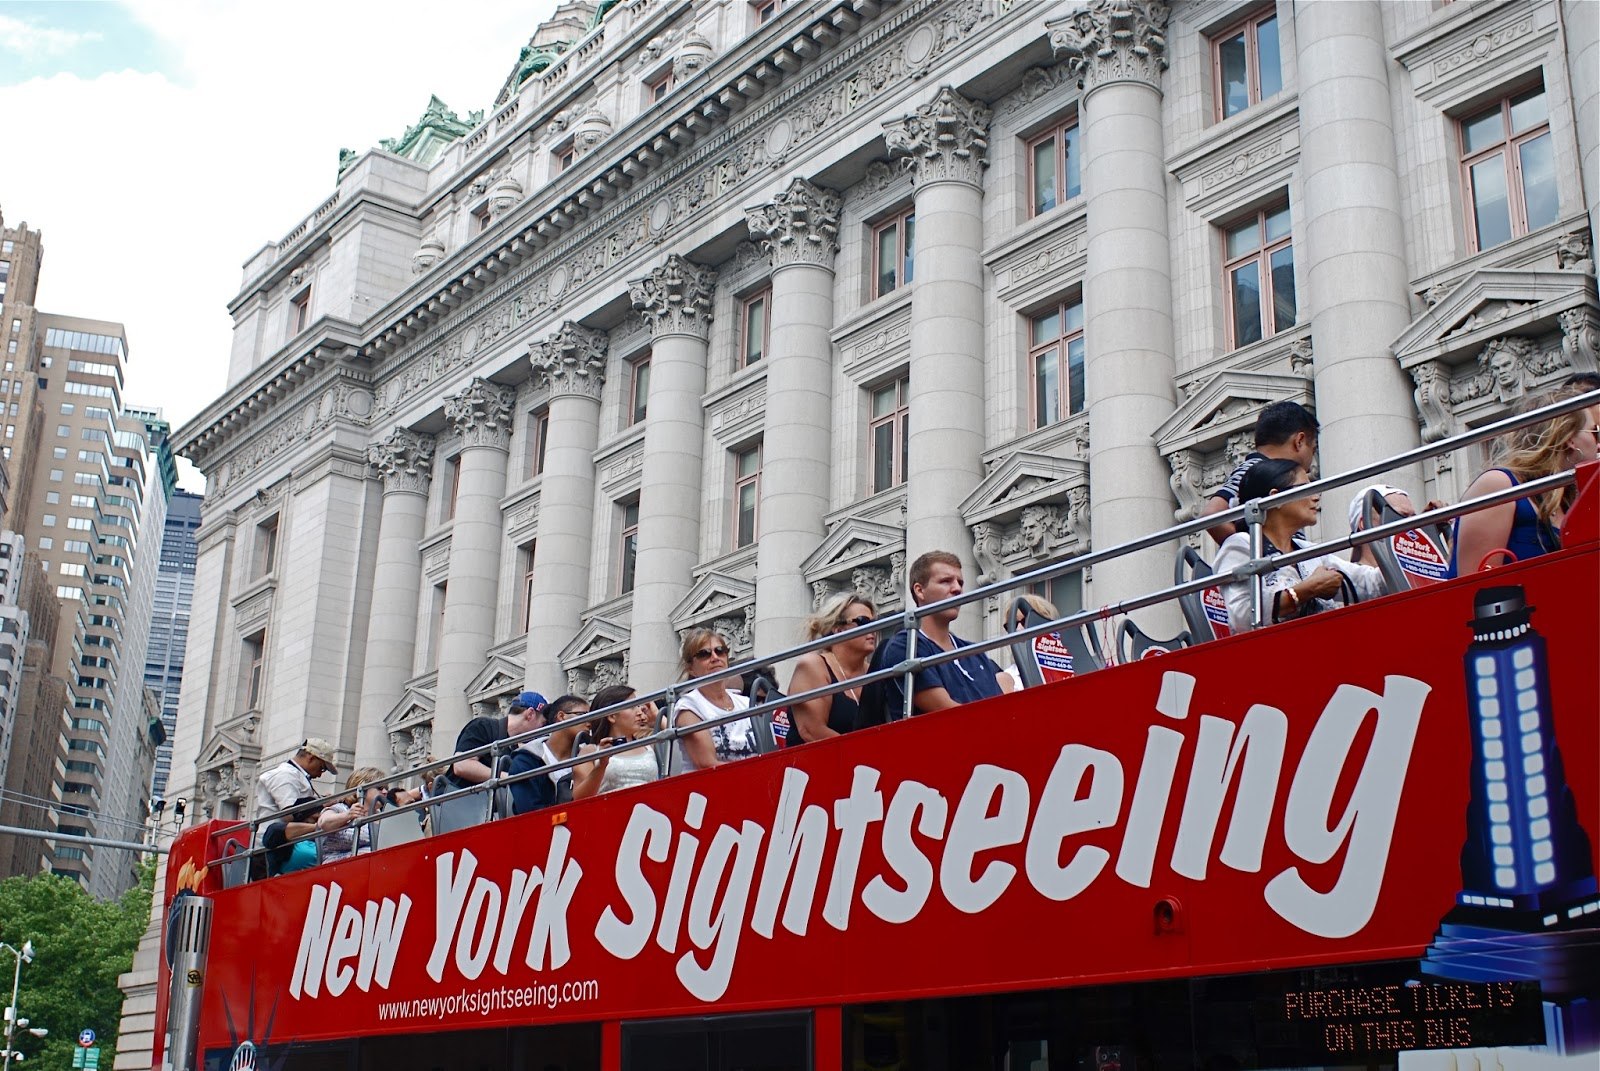 The Ride - Interactive New York Sightseeing Experience